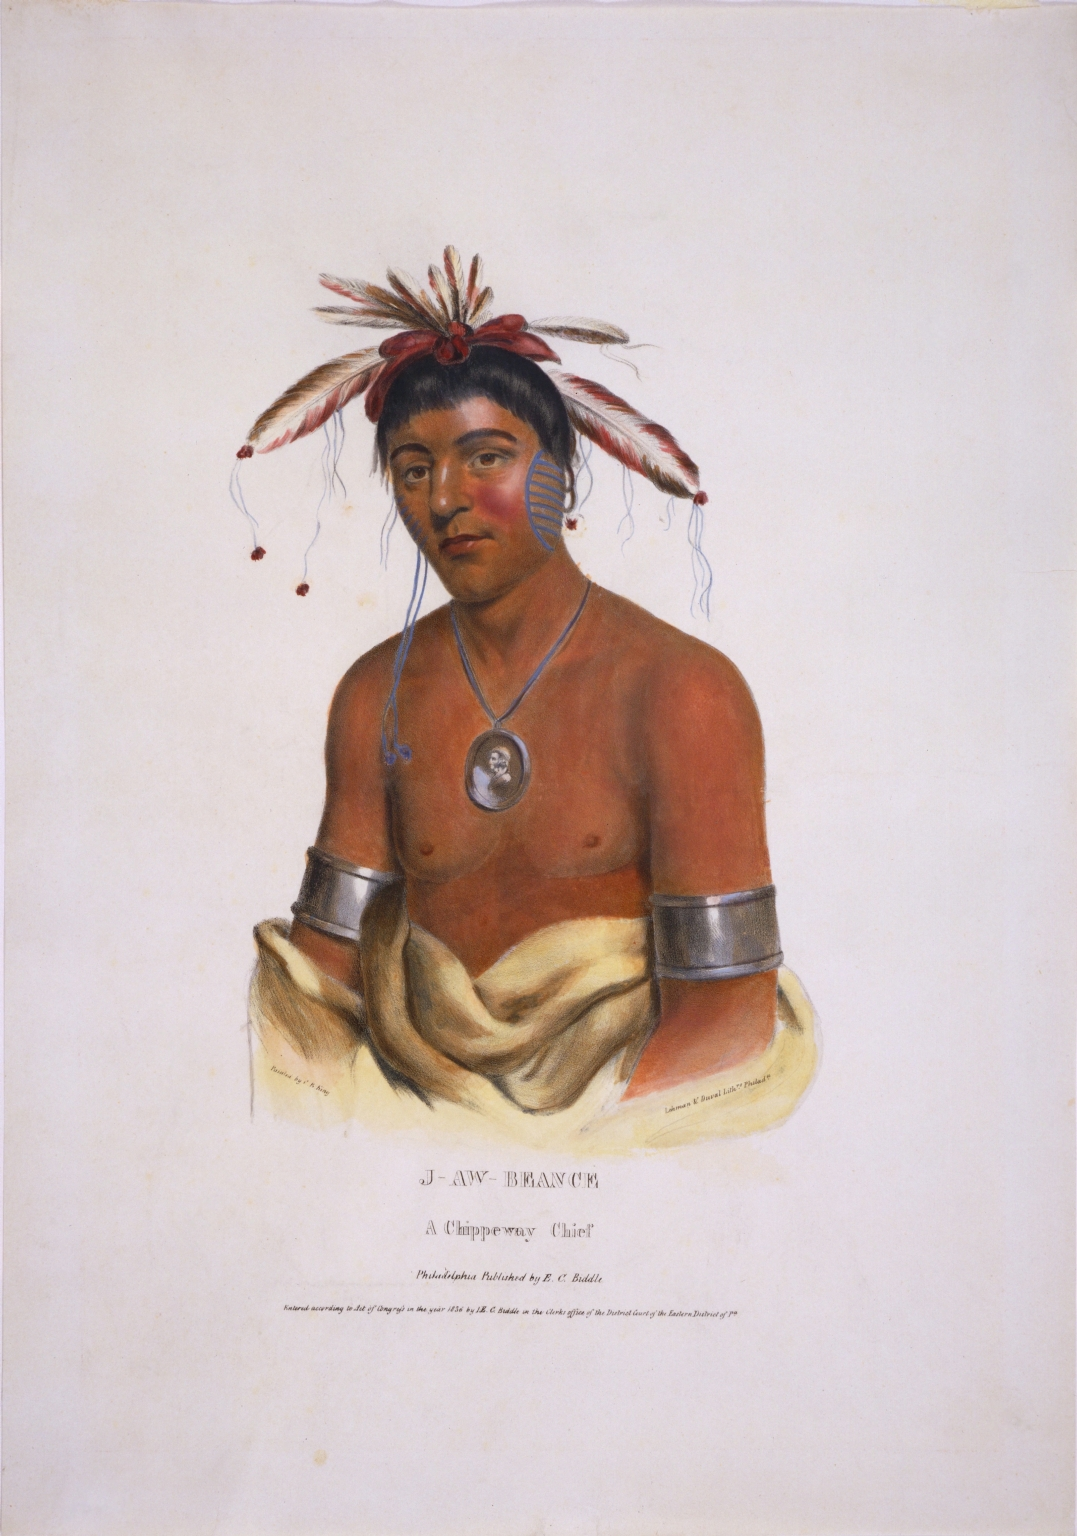 J-Aw-Beance, a Chippeway Chief